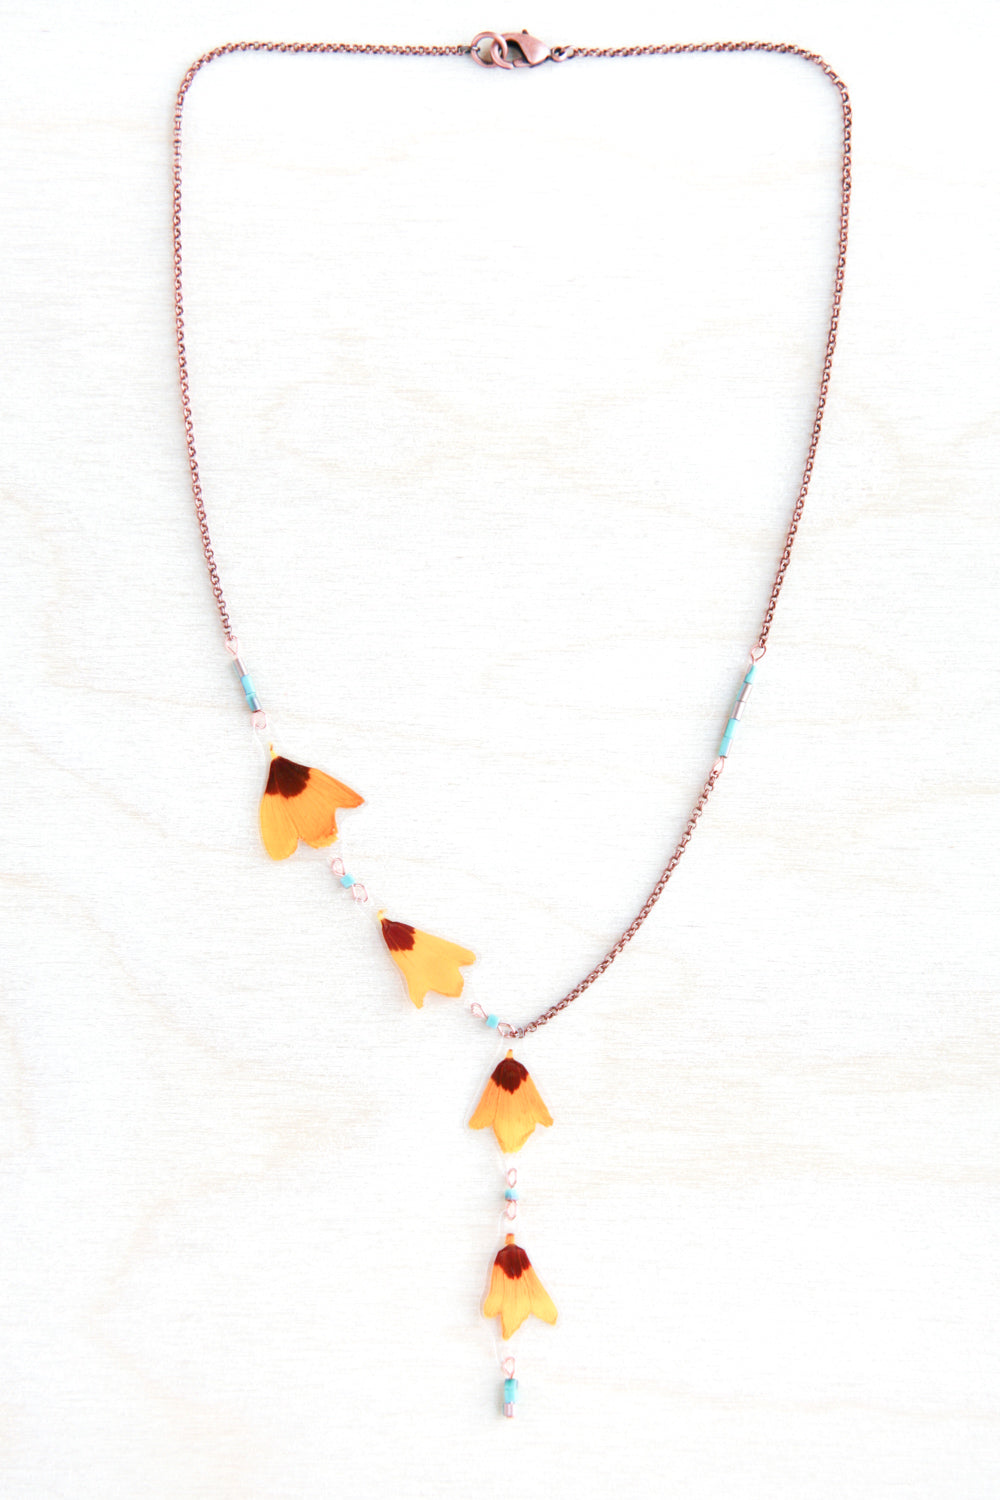 Yellow Coreopsis Pressed Petal Necklace with Turquoise Glass Beads